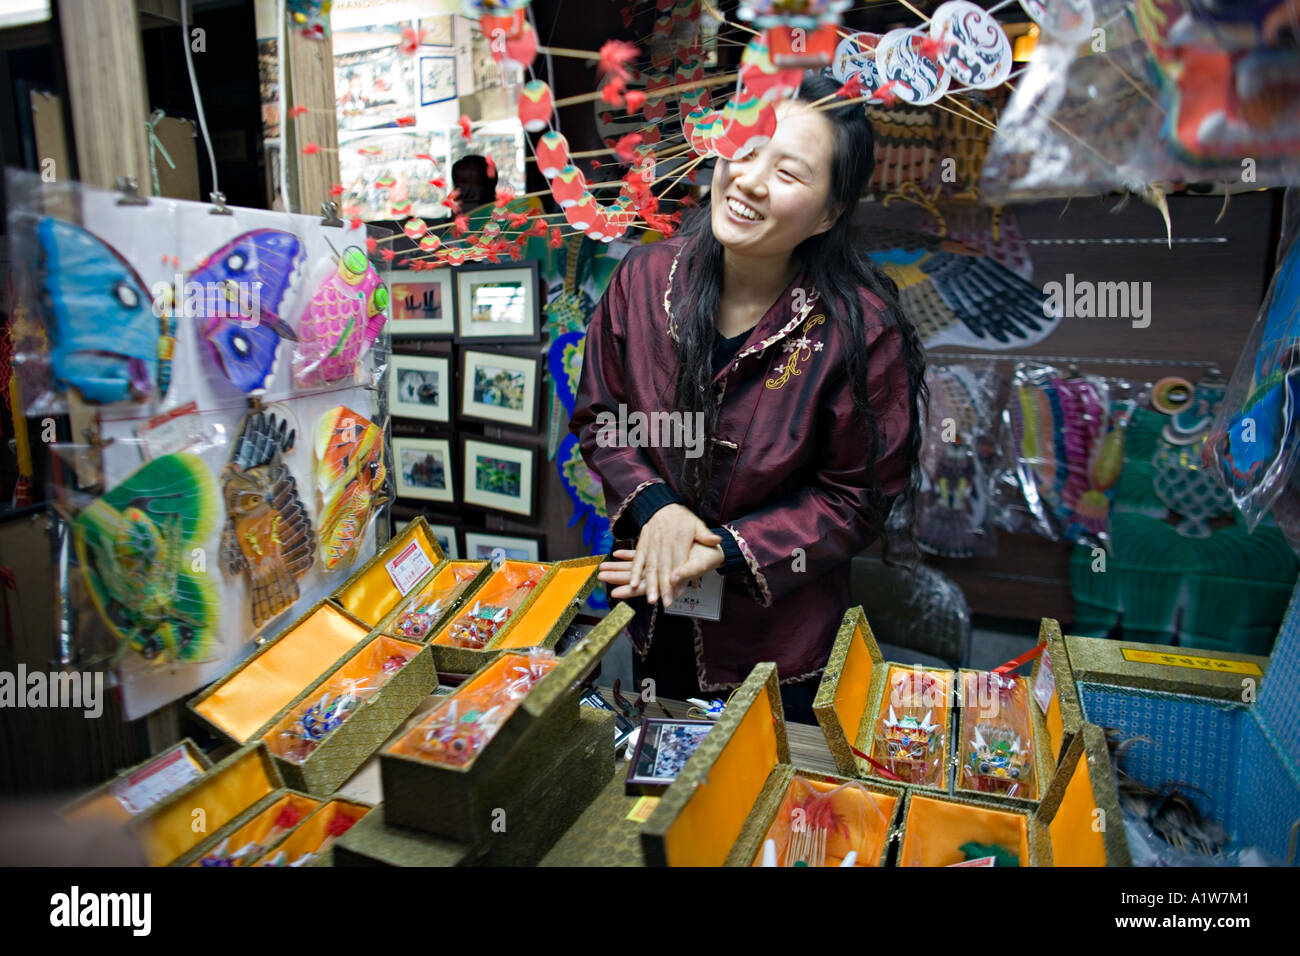 CHINA SHANGHAI Licensed Chinese artisan sells her hand made oriental kites at an open air market in Shanghai - Stock Image